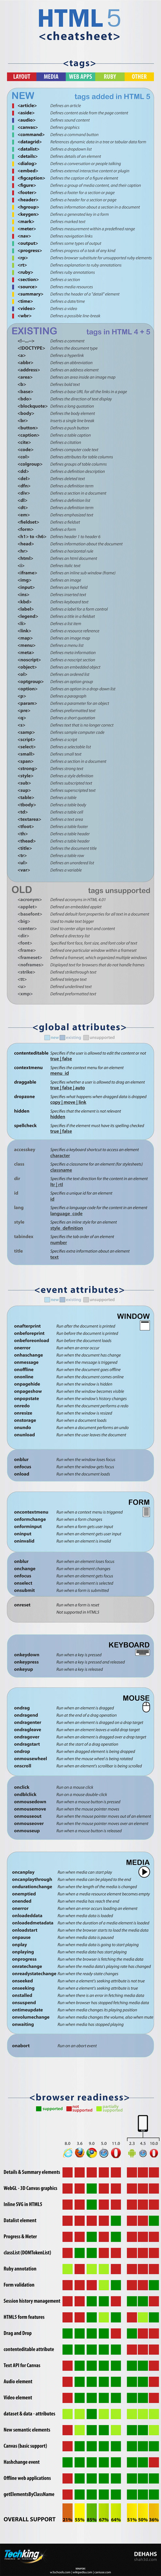 HyperText Markup Language HTML5 Cheatsheat [Infographic] | Interested in coding? | Scoop.it